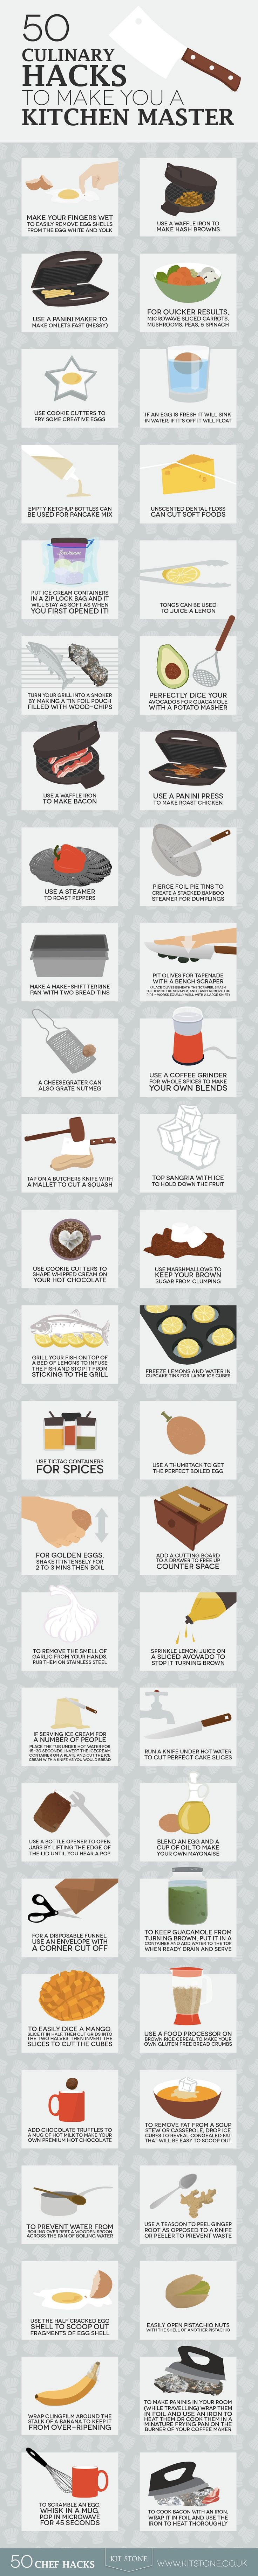 Infographic: 50 Culinary Hacks To Make You A Kitchen Master - DesignTAXI.com